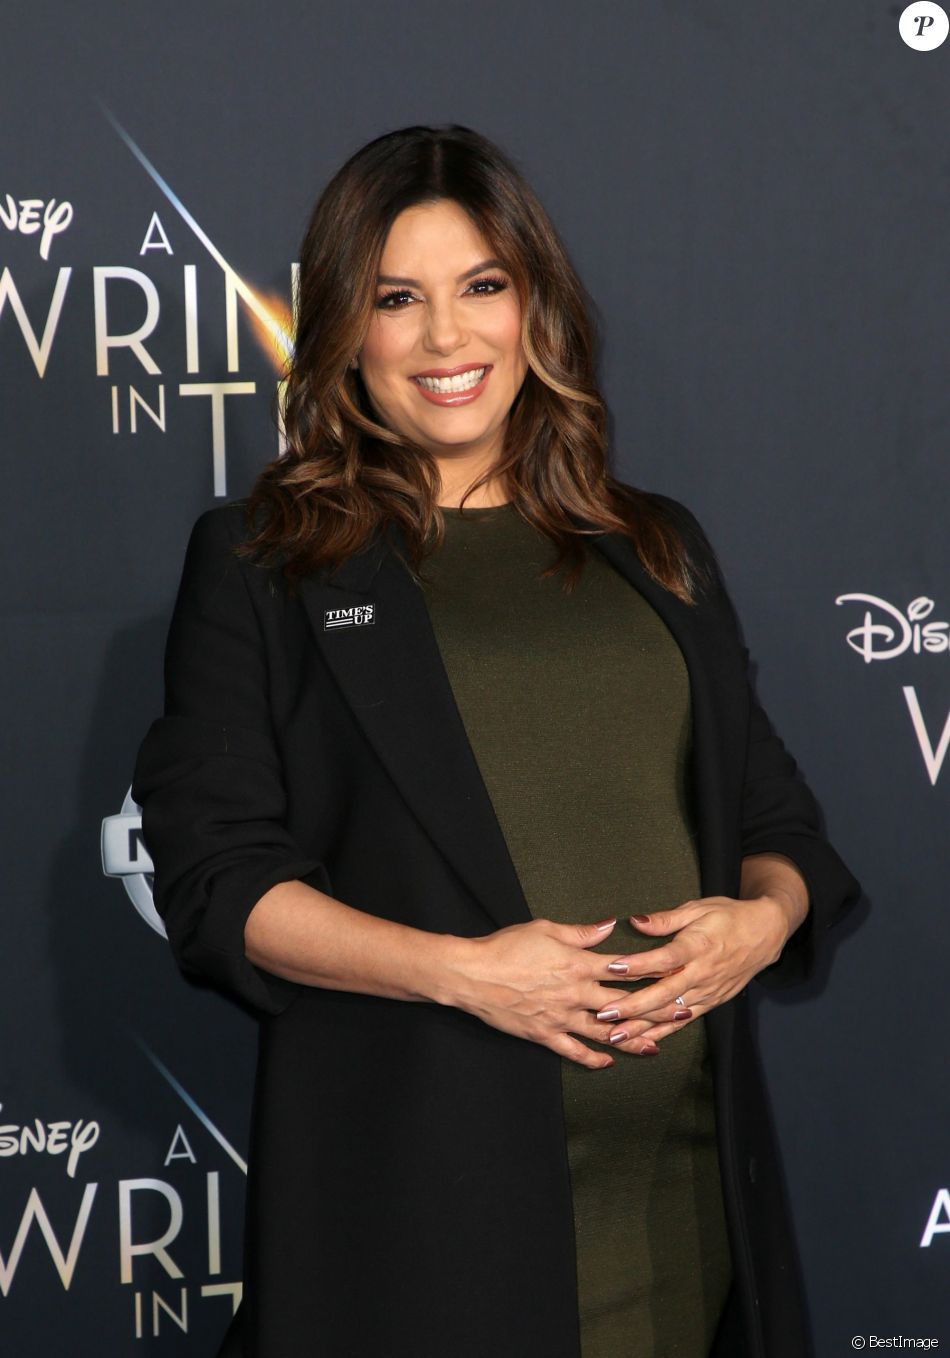 eva longoria enceinte elle veut caser son fils avec la fille d 39 une star purepeople. Black Bedroom Furniture Sets. Home Design Ideas